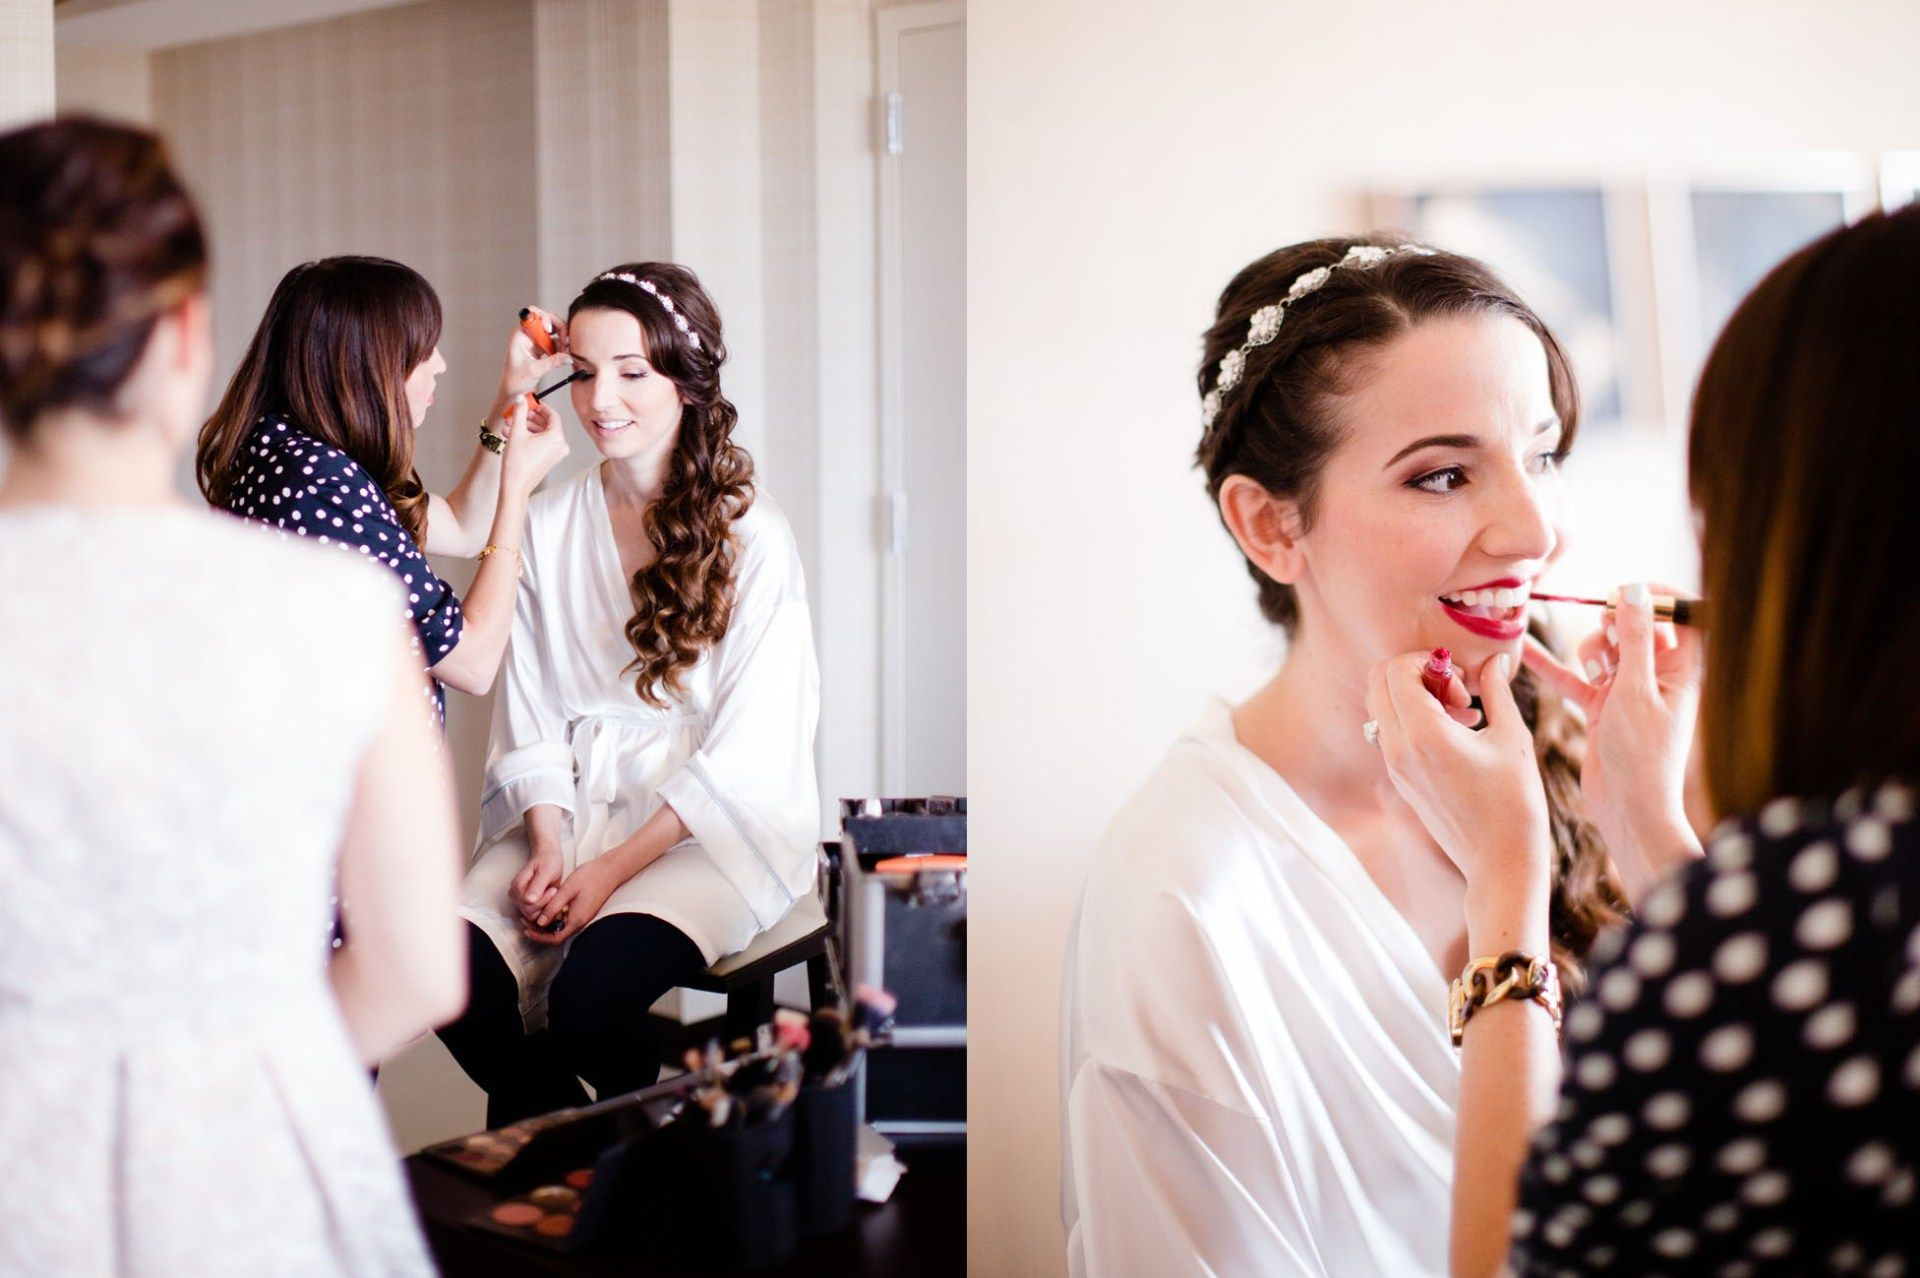 beauty | chels & huani bridal hair & makeup in oc, la + san diego